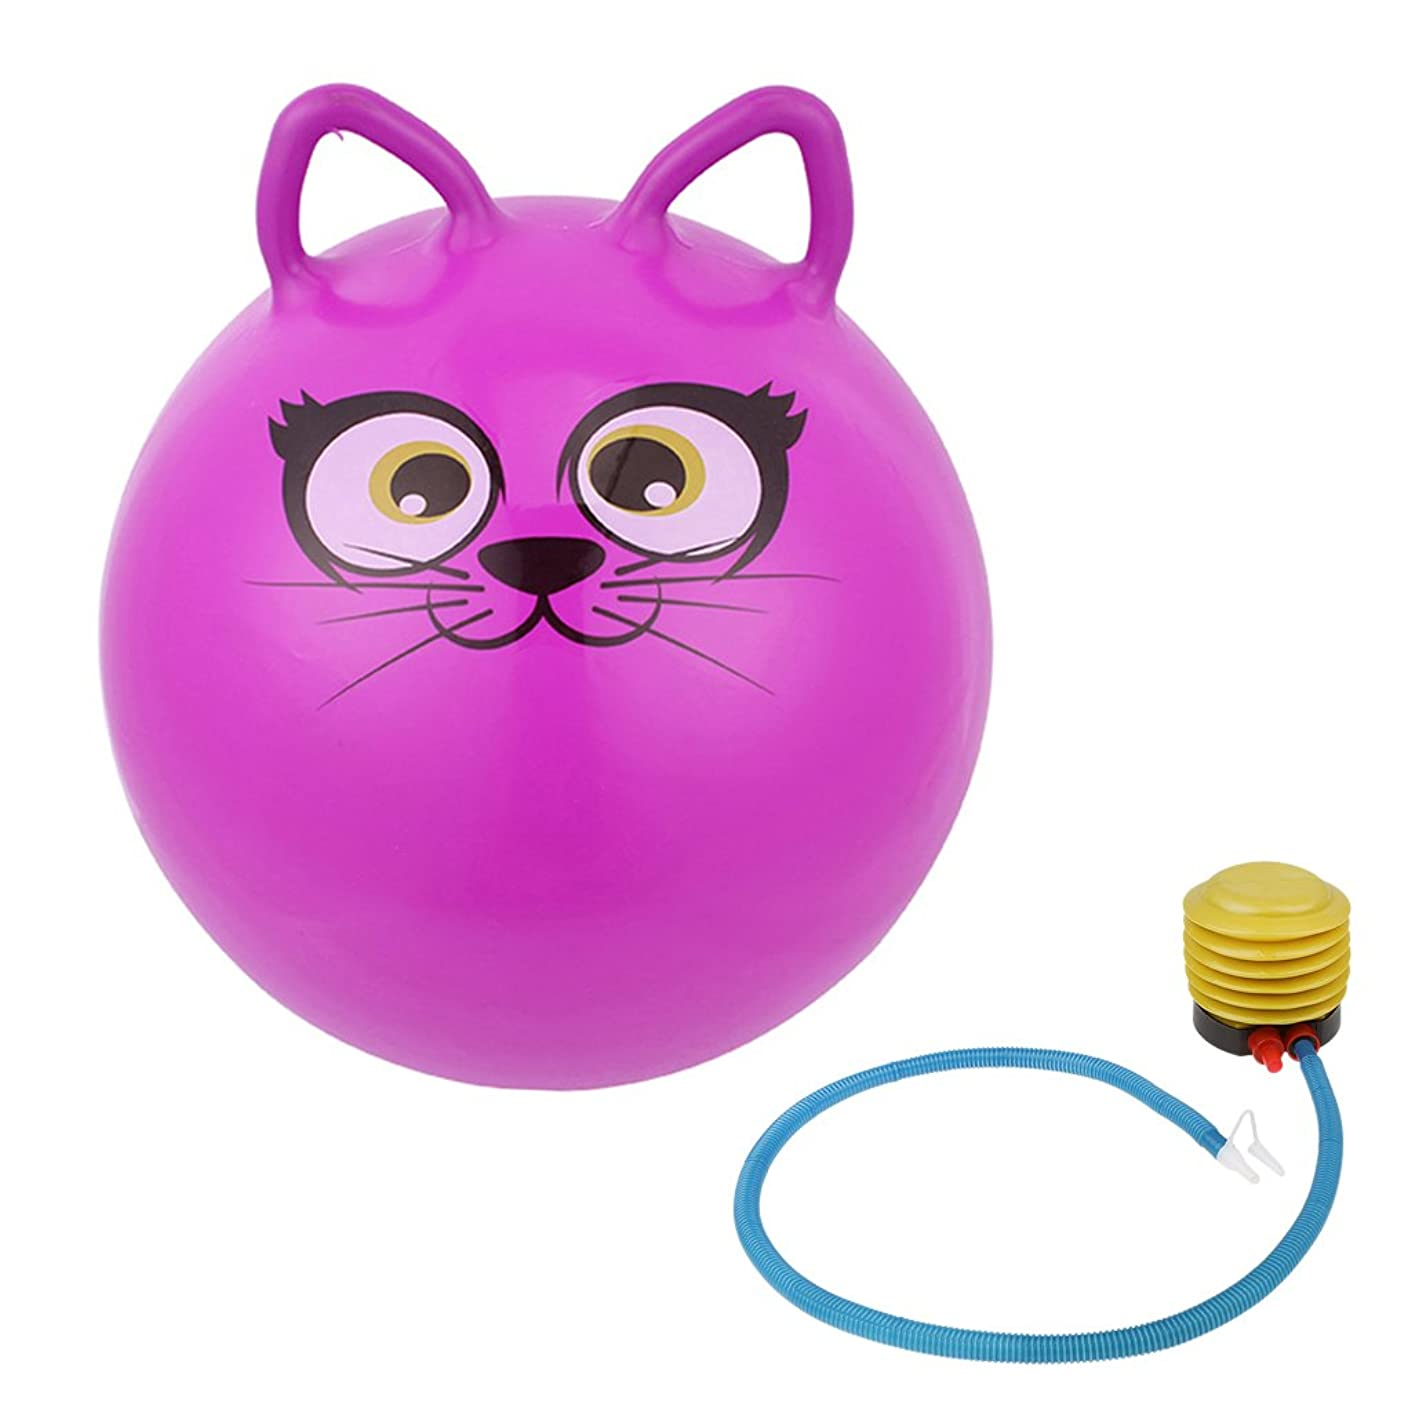 Jili Online 18'' Cute Jump Bouncing Hop Space Hopper Ball Cat Ear Shaped handle Kids Outdoor Toy Inflatable Purple